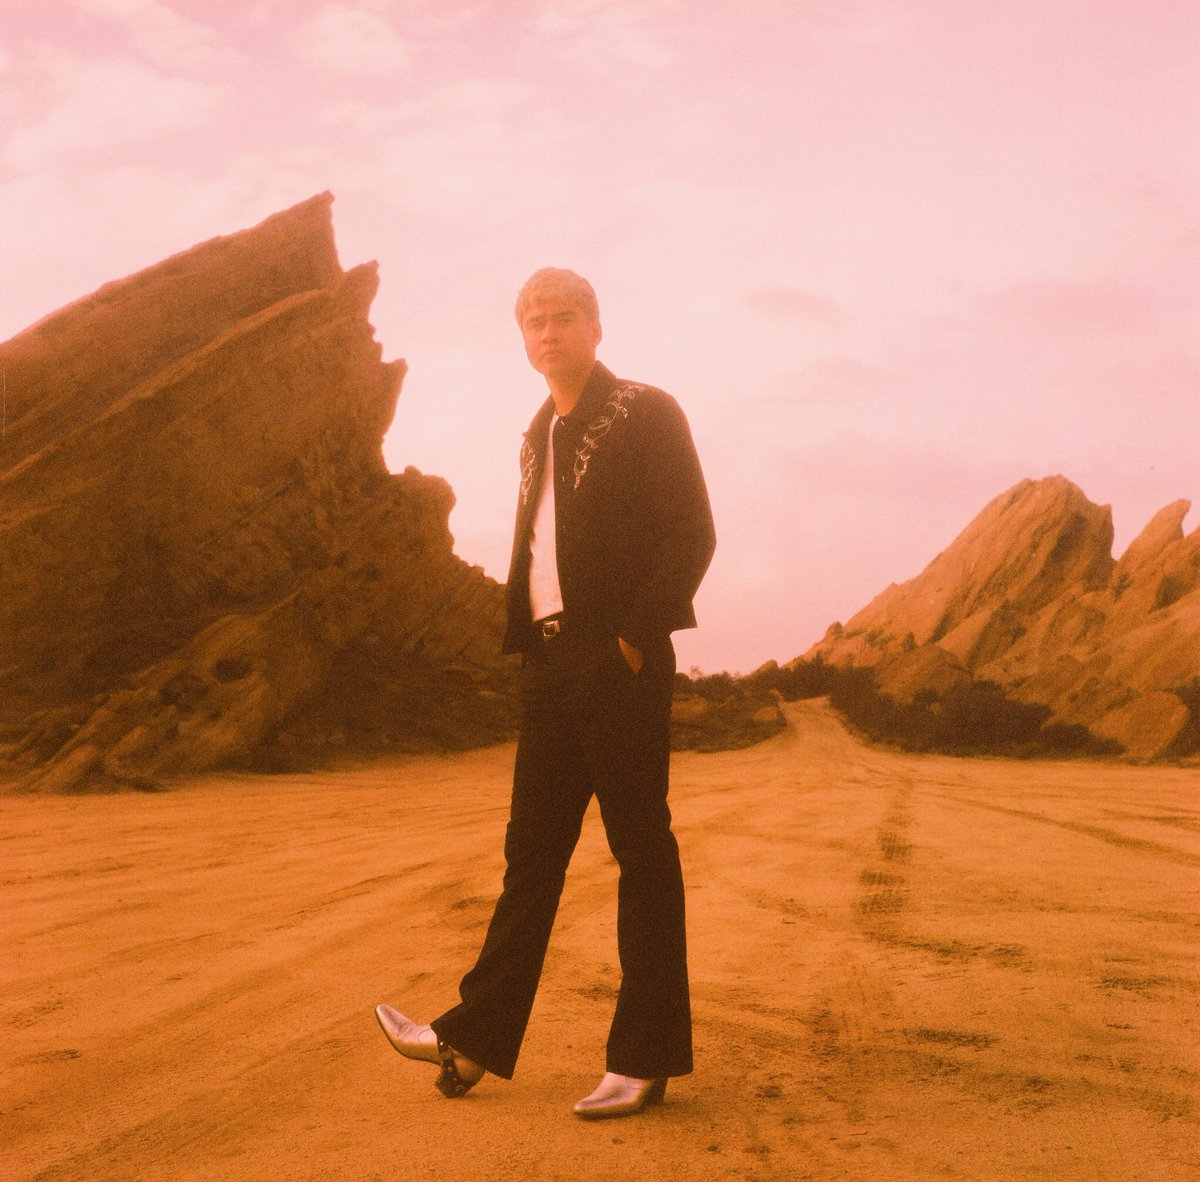 Here's some Film @HOEG got developed from our desert trip.